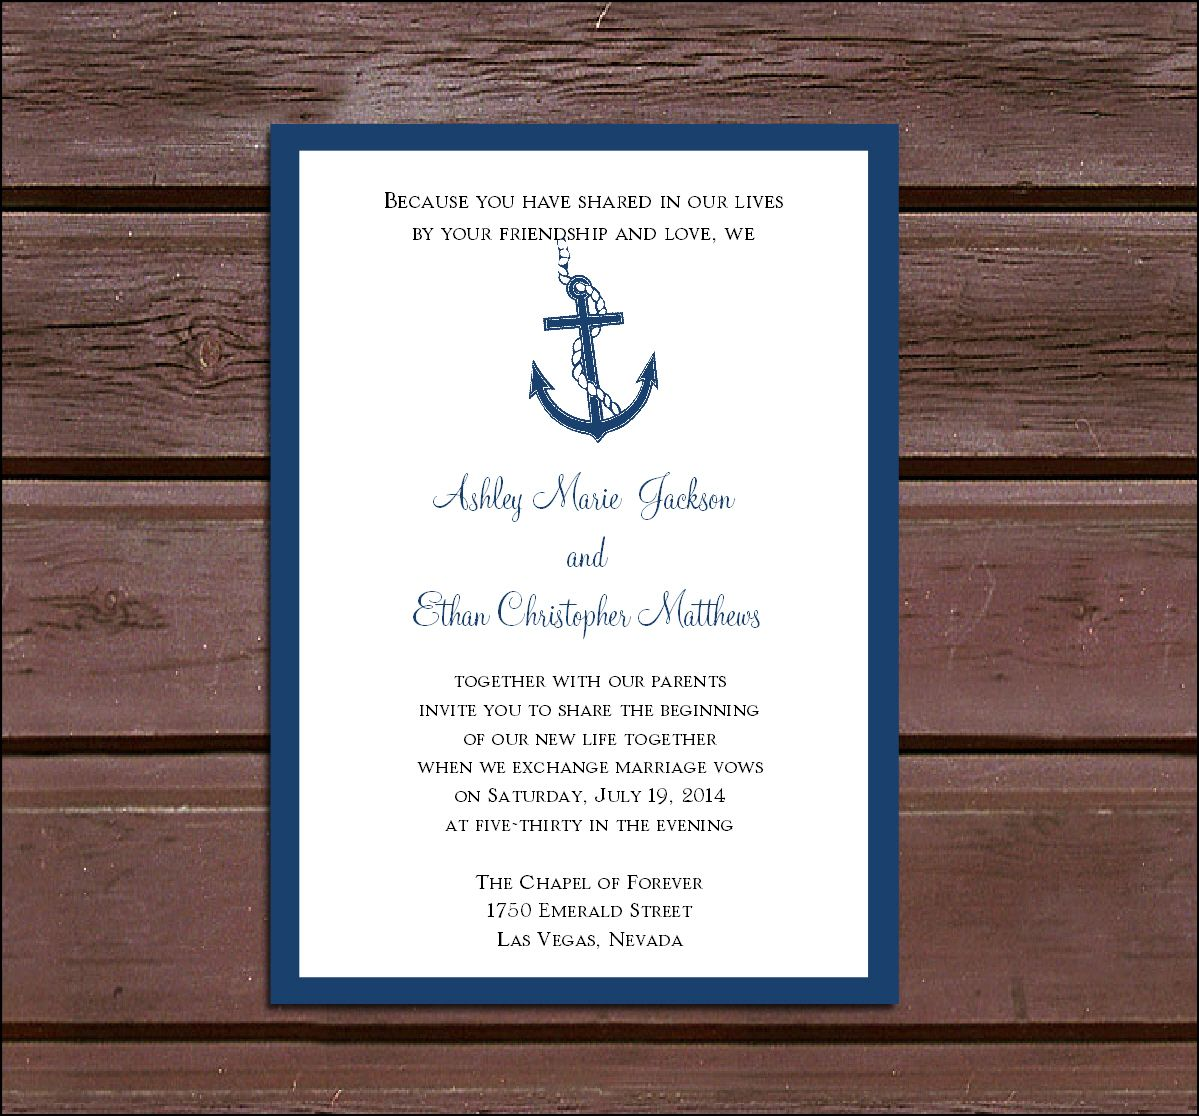 Nautical Wedding Invitation Template Wedding invitations